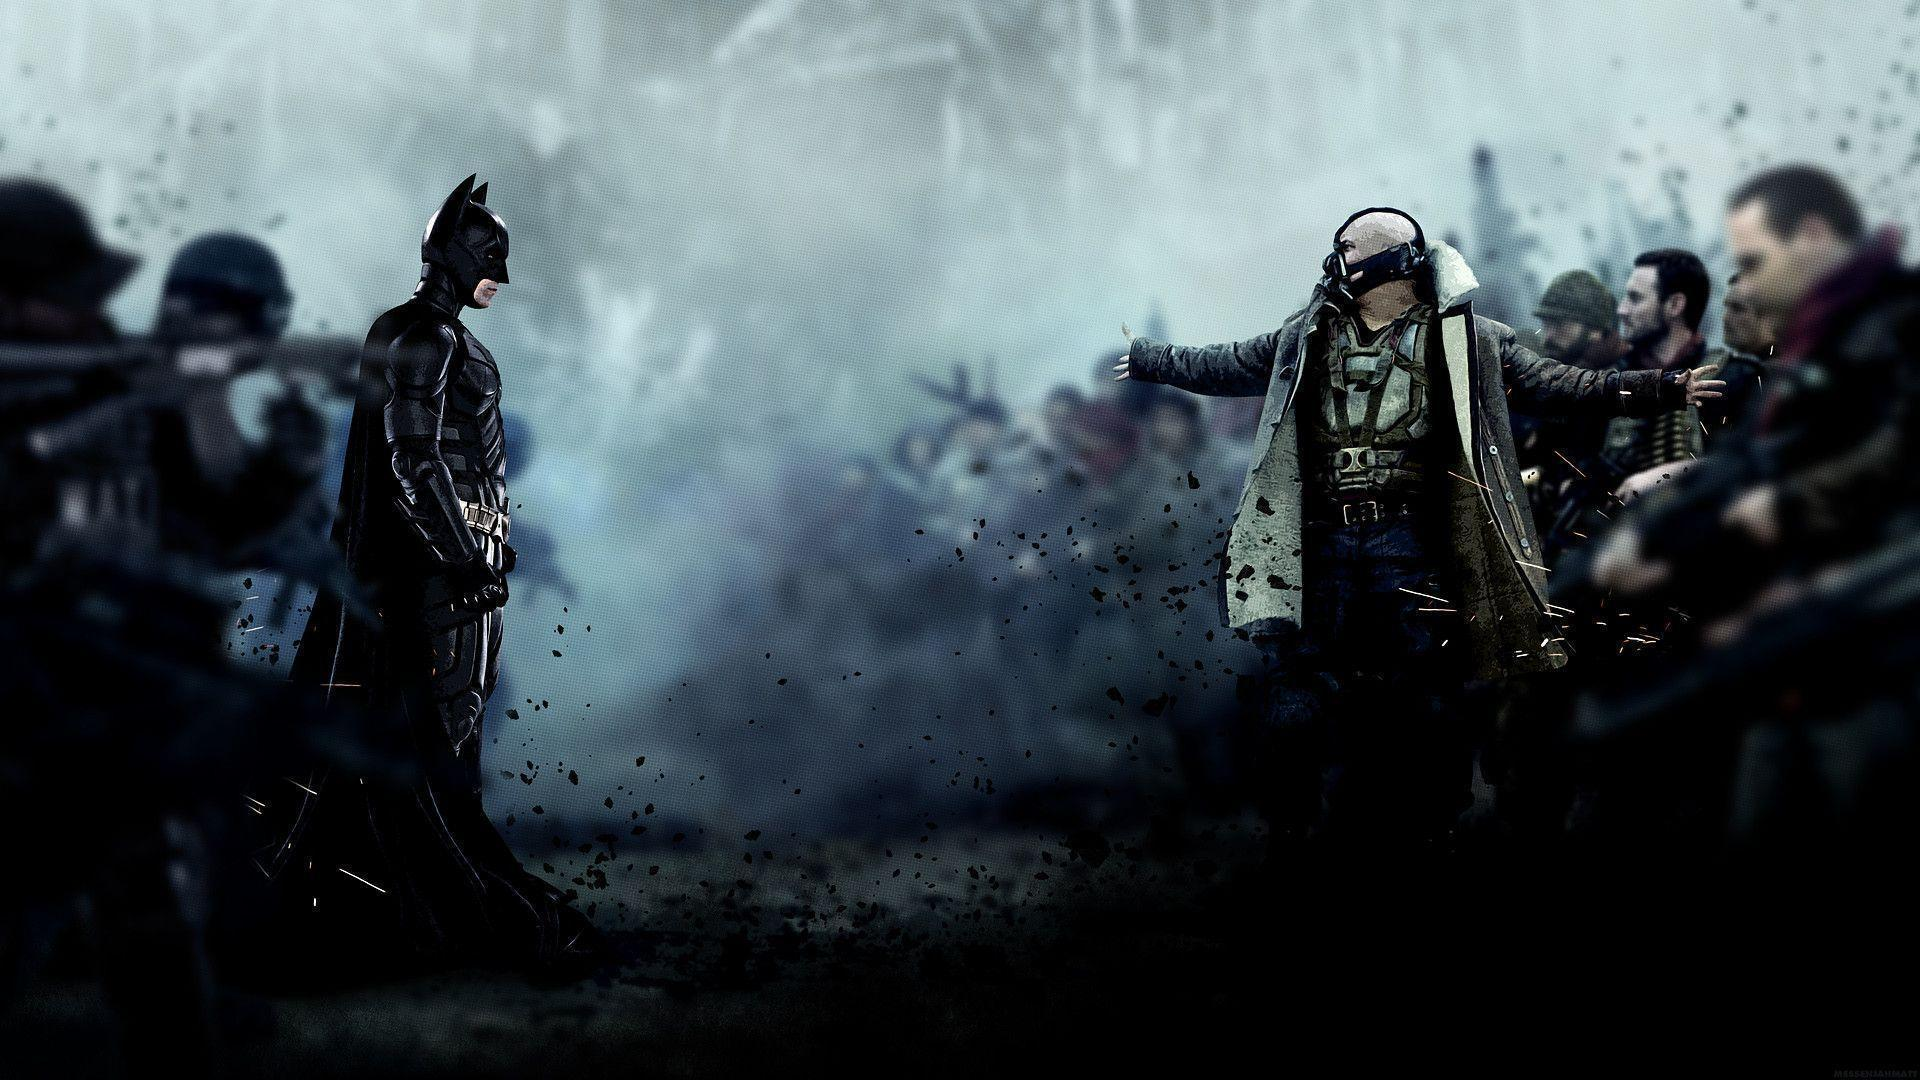 Batman The Dark Knight Rises HD Wallpapers 1920x1080